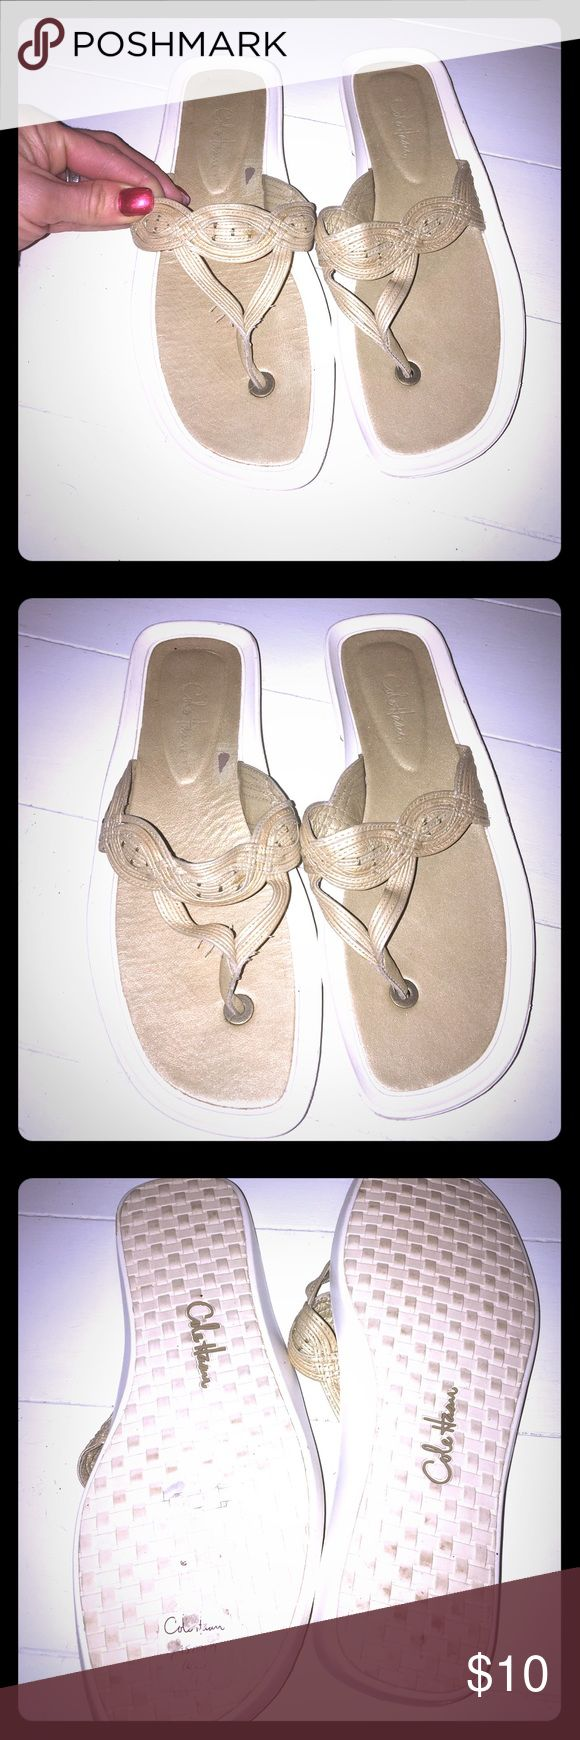 Cole Haan Sandals NWOT Only worn to try on. The straps are a little bent from being stored  but straighten out once u put your foot in. These are white rubber on the bottom with gold braided leather straps. Cole Haan Shoes Sandals